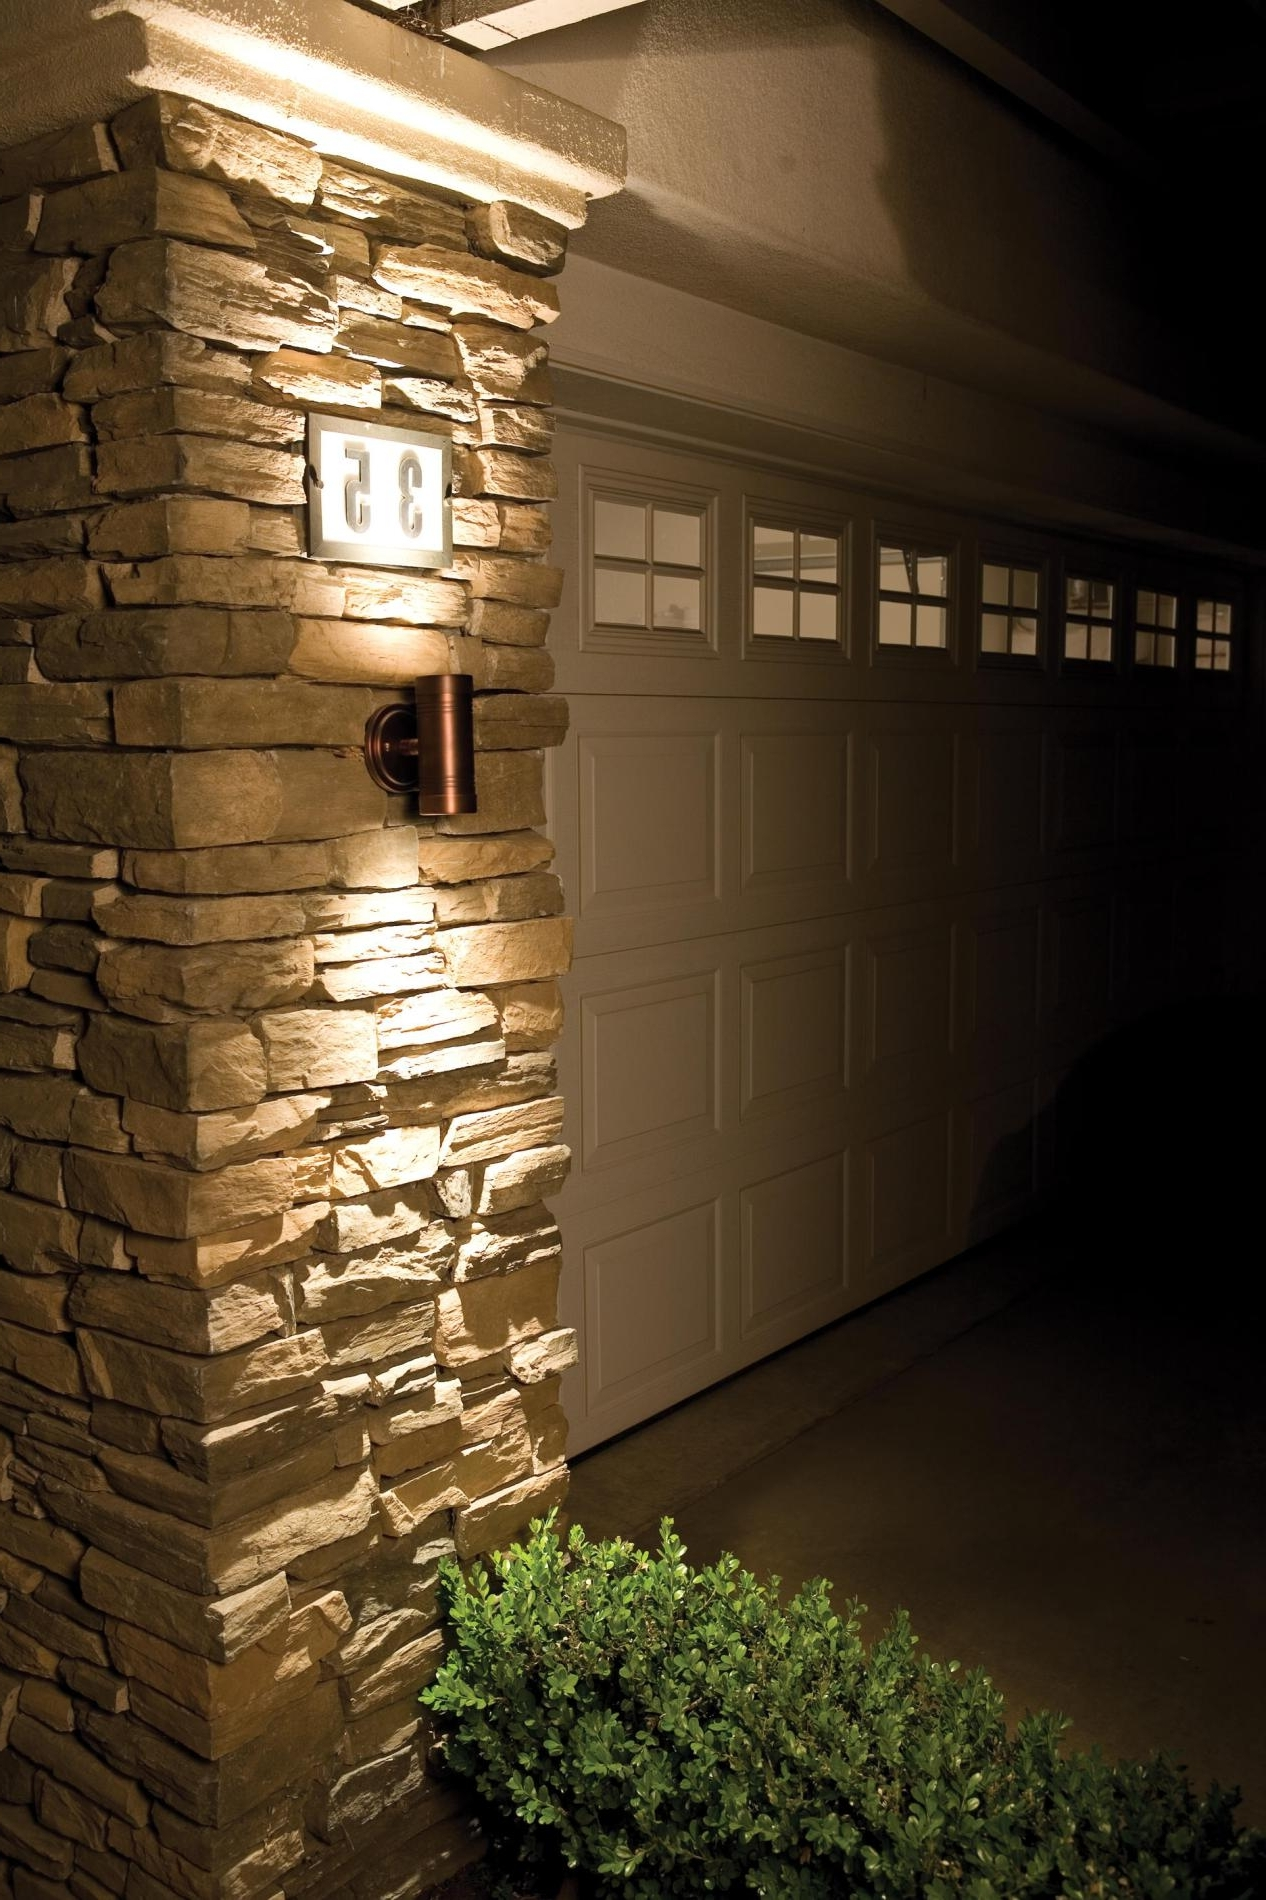 Outdoor Wall Led Lighting Fixtures Intended For Latest Impressive Outdoor Light Fixtures Featuring Two Ways Led Wall Sconce (View 11 of 20)